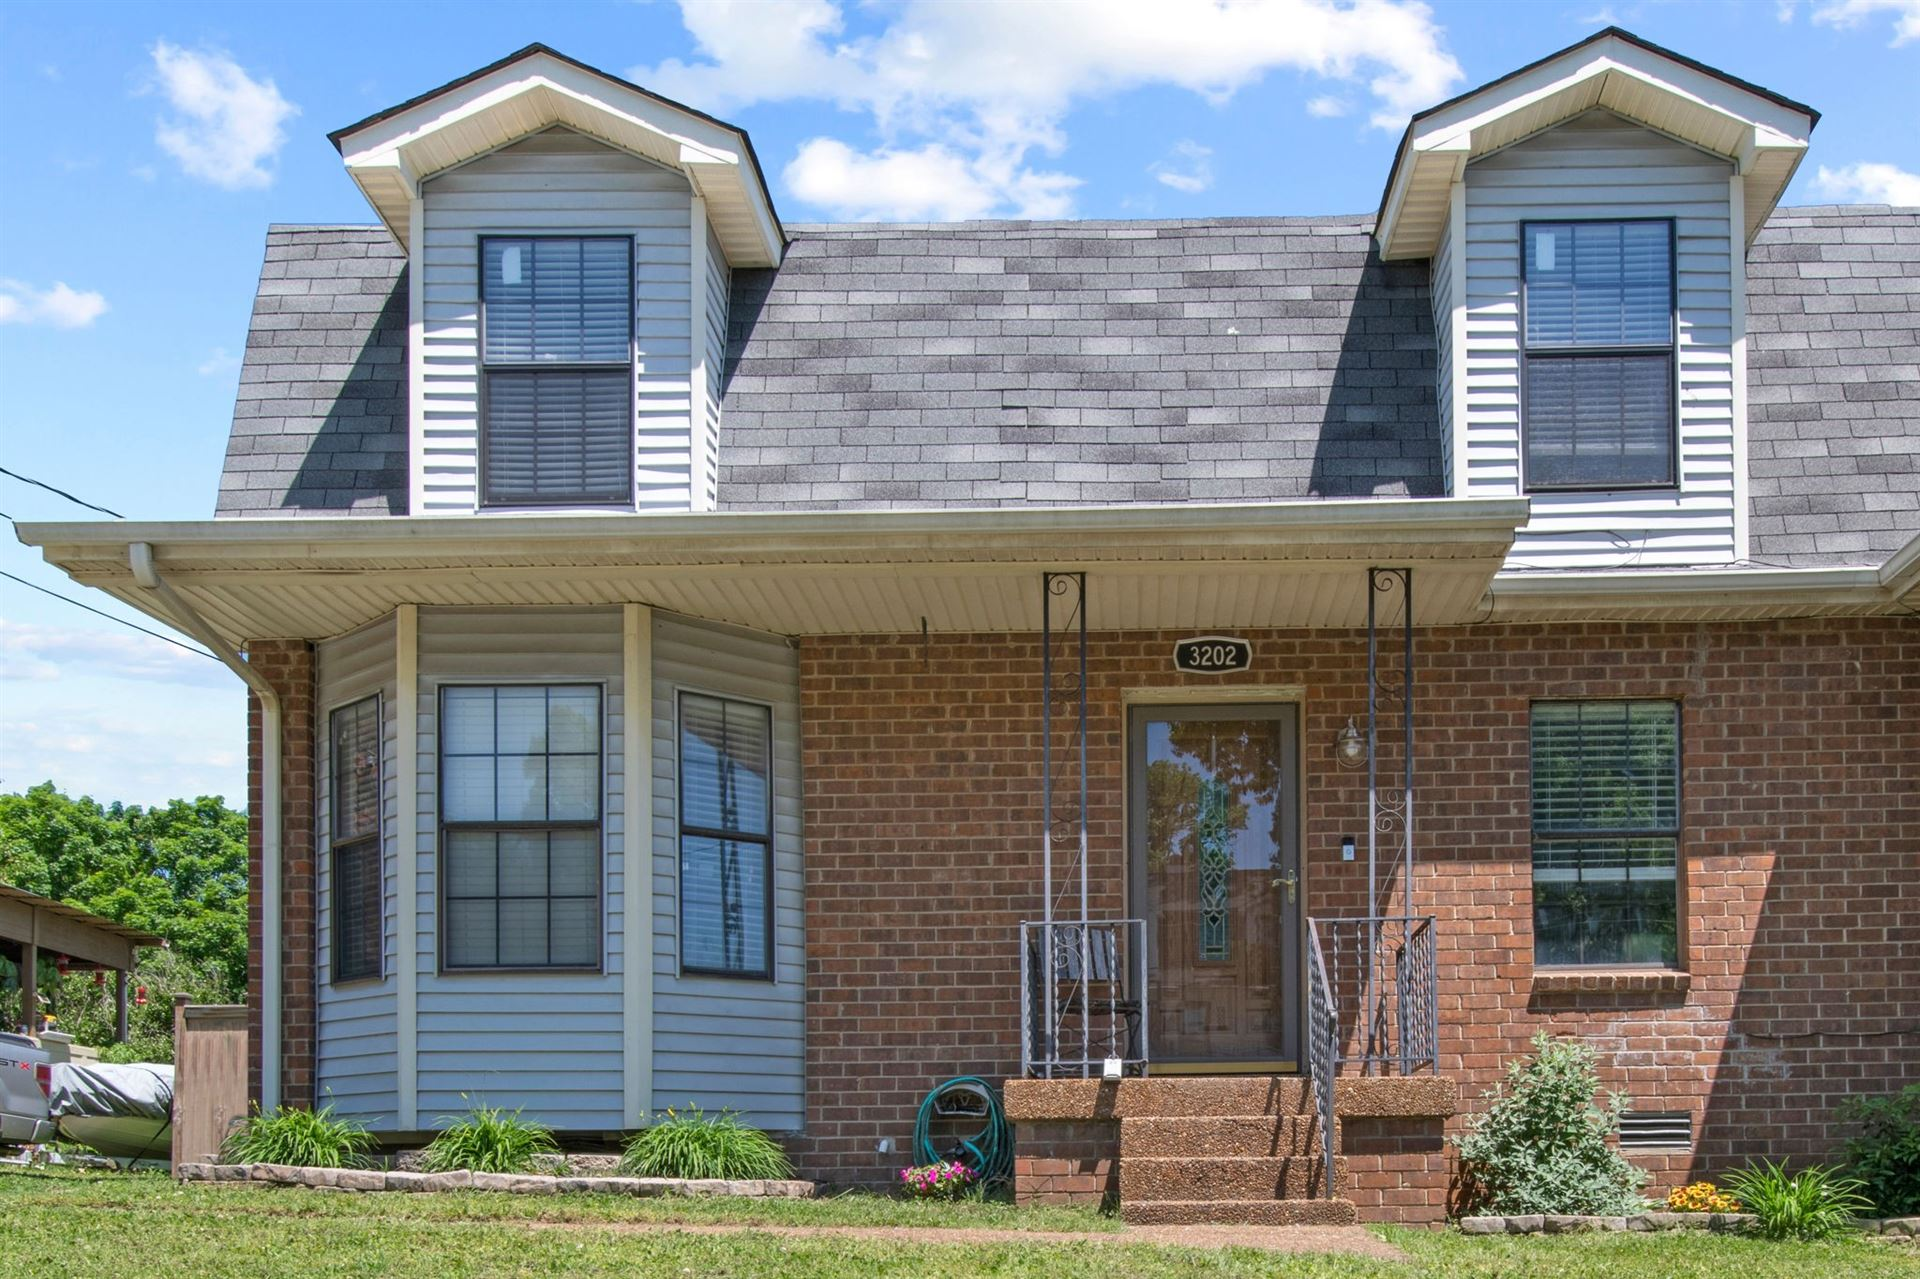 3202 Priest Woods Dr, Nashville, TN 37214 - MLS#: 2251322